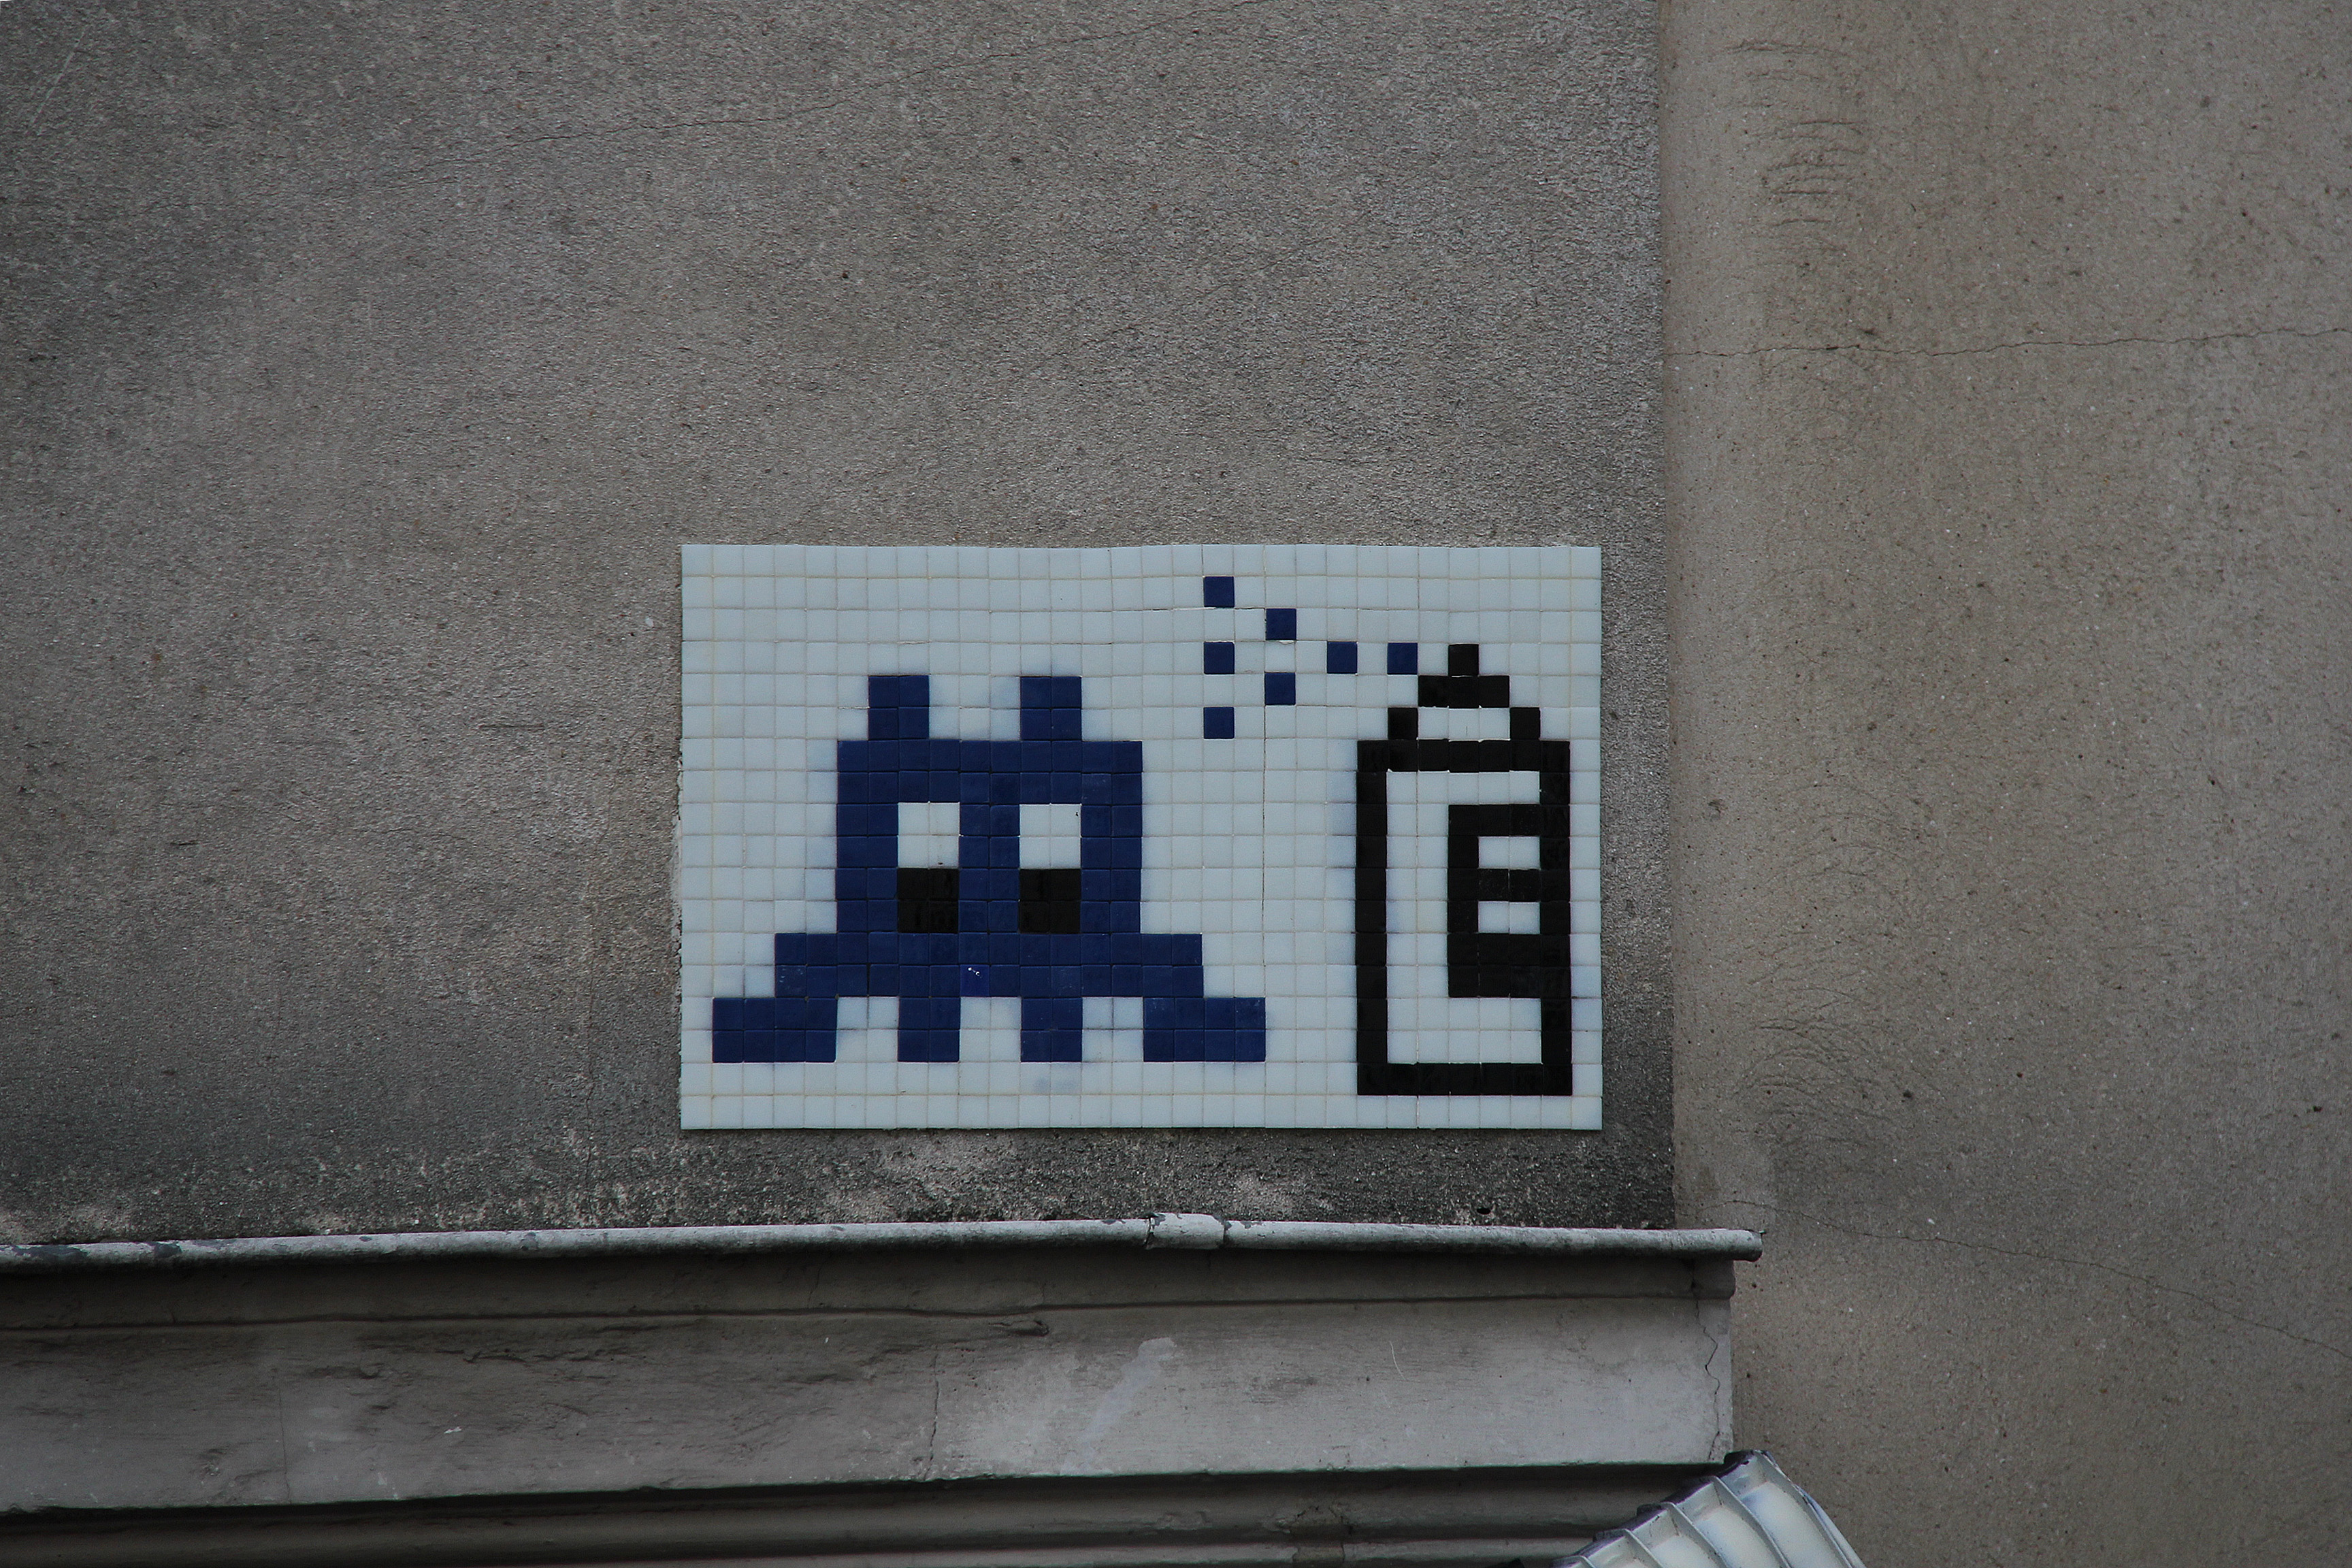 FileSpace Invaders And Spray Can Mosaic Graffiti In Parisjpg - Amazing graffiti alters perspective space